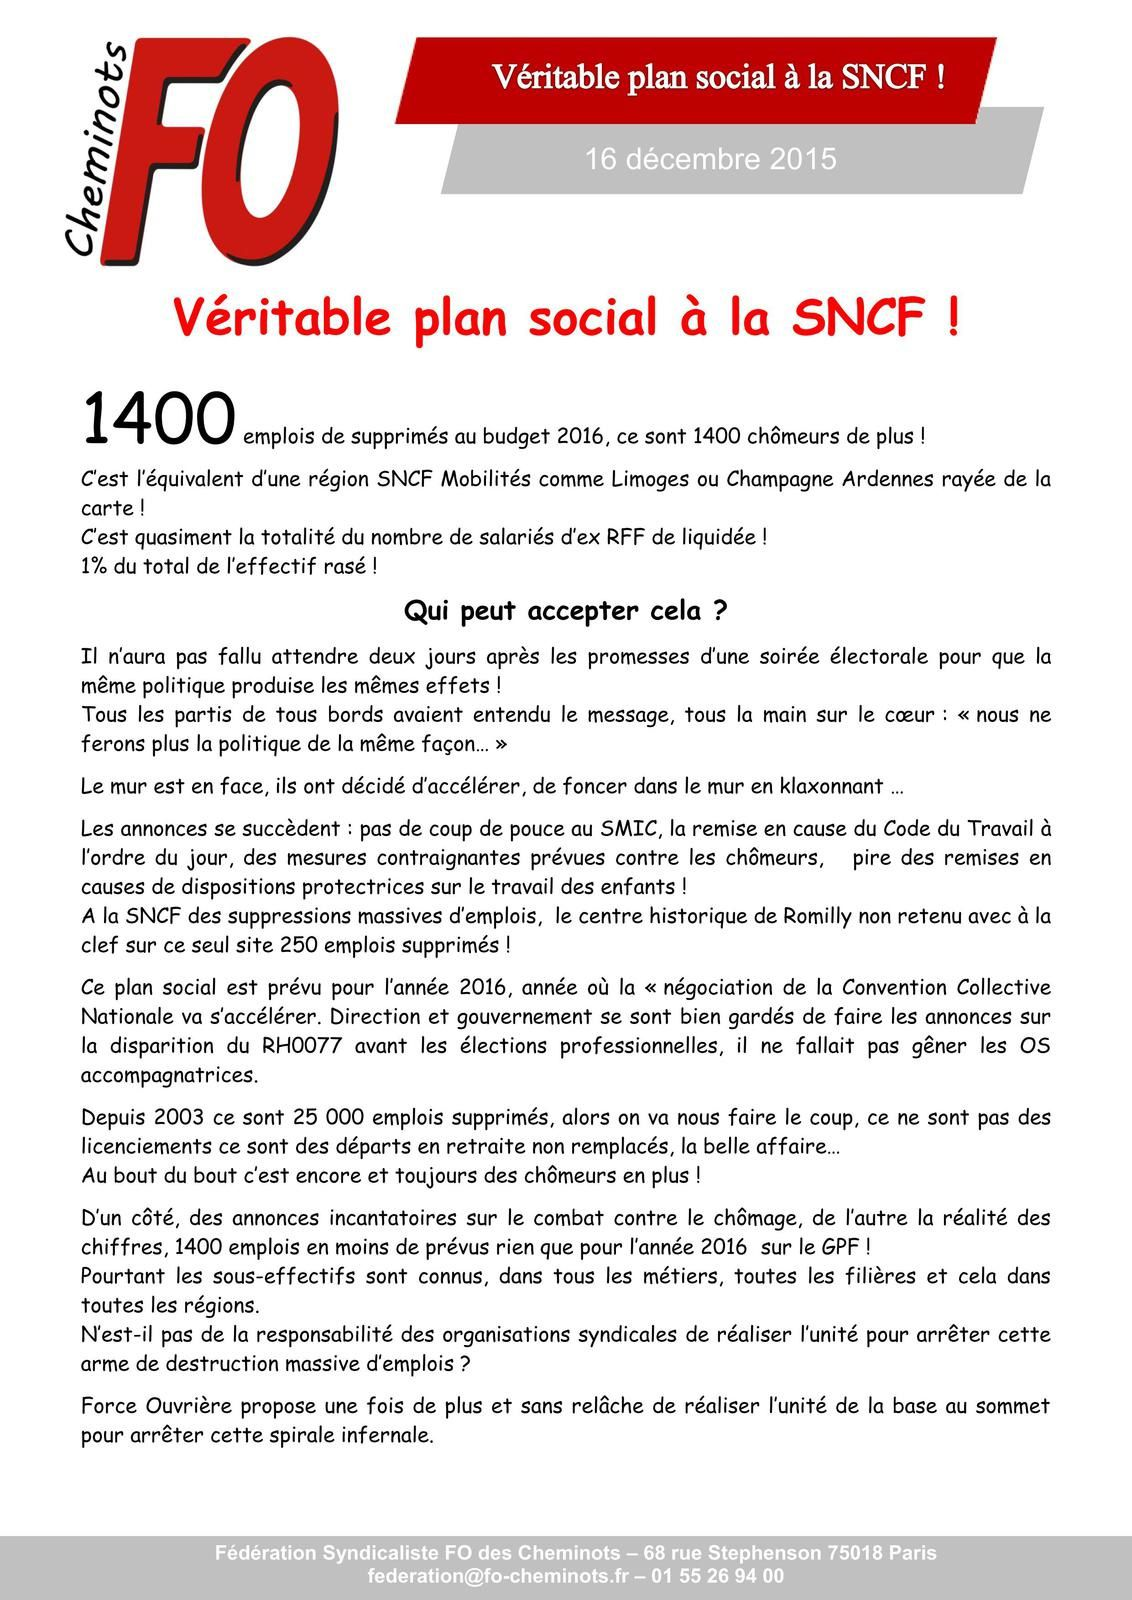 1400 EMPLOIS SUPPRIMES